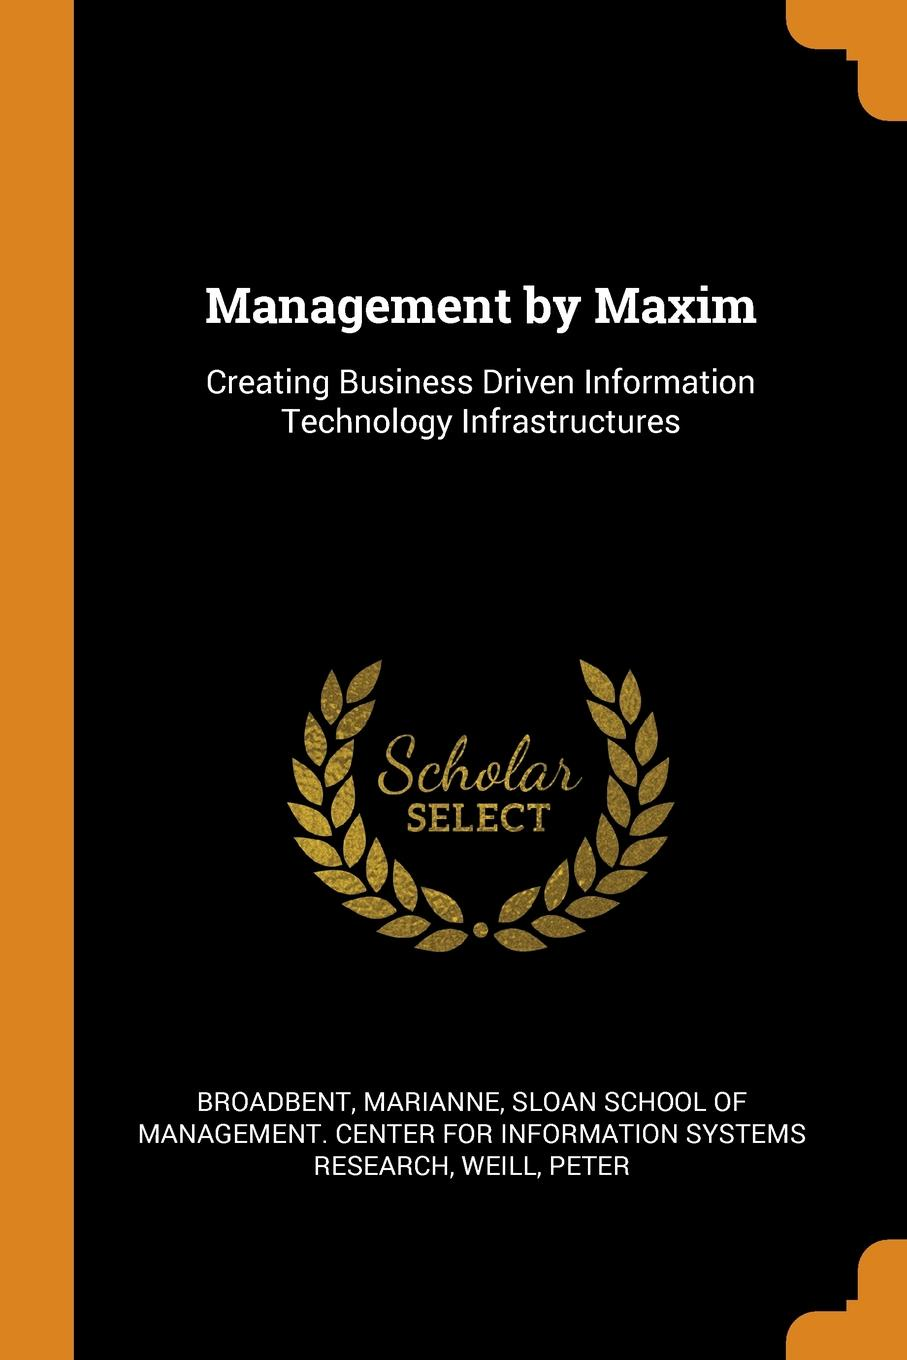 Management by Maxim. Creating Business Driven Information Technology Infrastructures